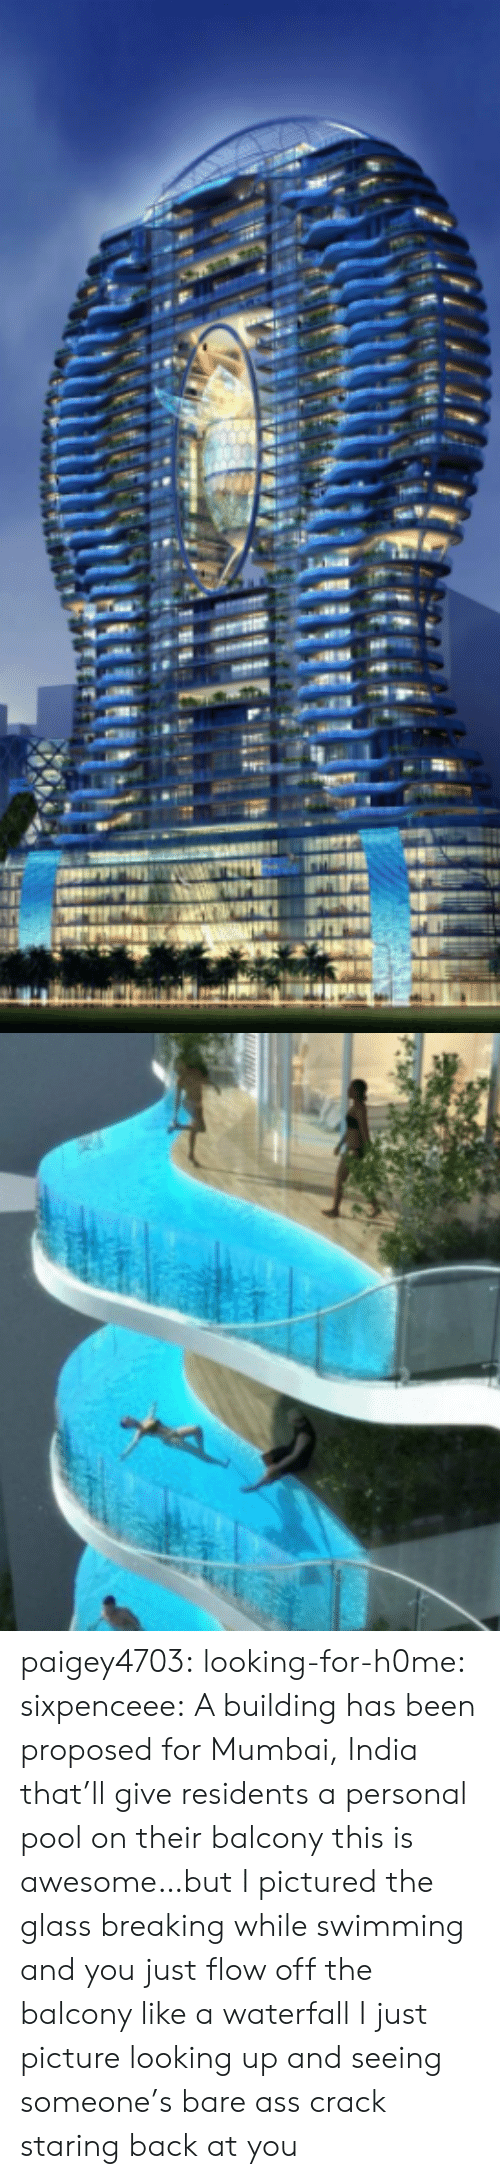 Sixpenceee: paigey4703:  looking-for-h0me:  sixpenceee: A building has been proposed for Mumbai, India that'll give residents a personal pool on their balcony this is awesome…but I pictured the glass breaking while swimming and you just flow off the balcony like a waterfall    I just picture looking up and seeing someone's bare ass crack staring back at you